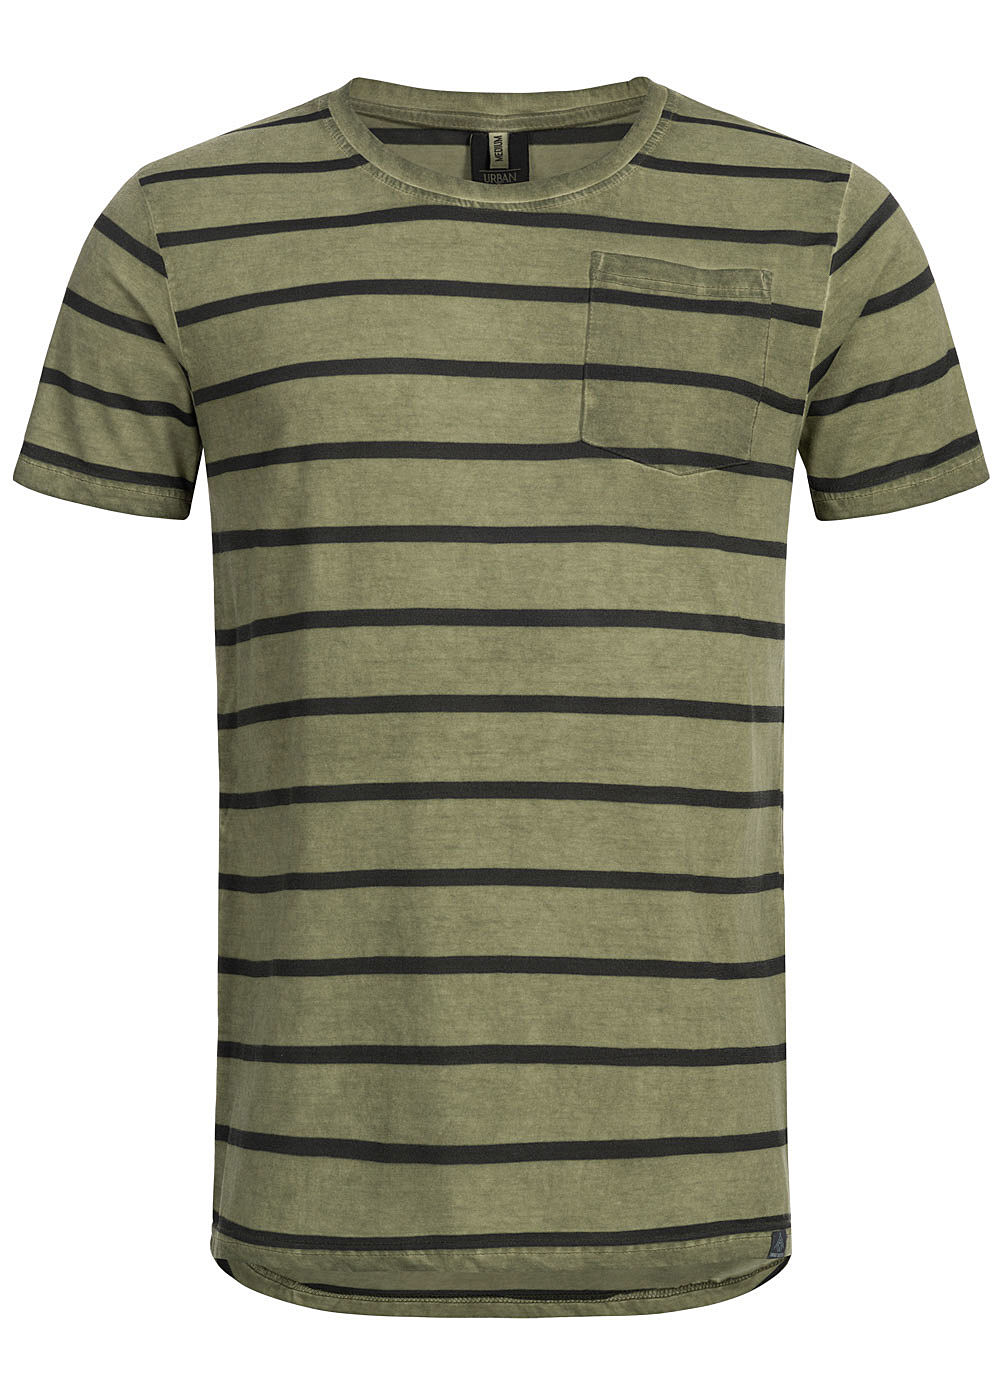 Eight2Nine Herren Striped Special Color Effect T-Shirt by Urban Surface olive grün - Art.-Nr.: 19072782